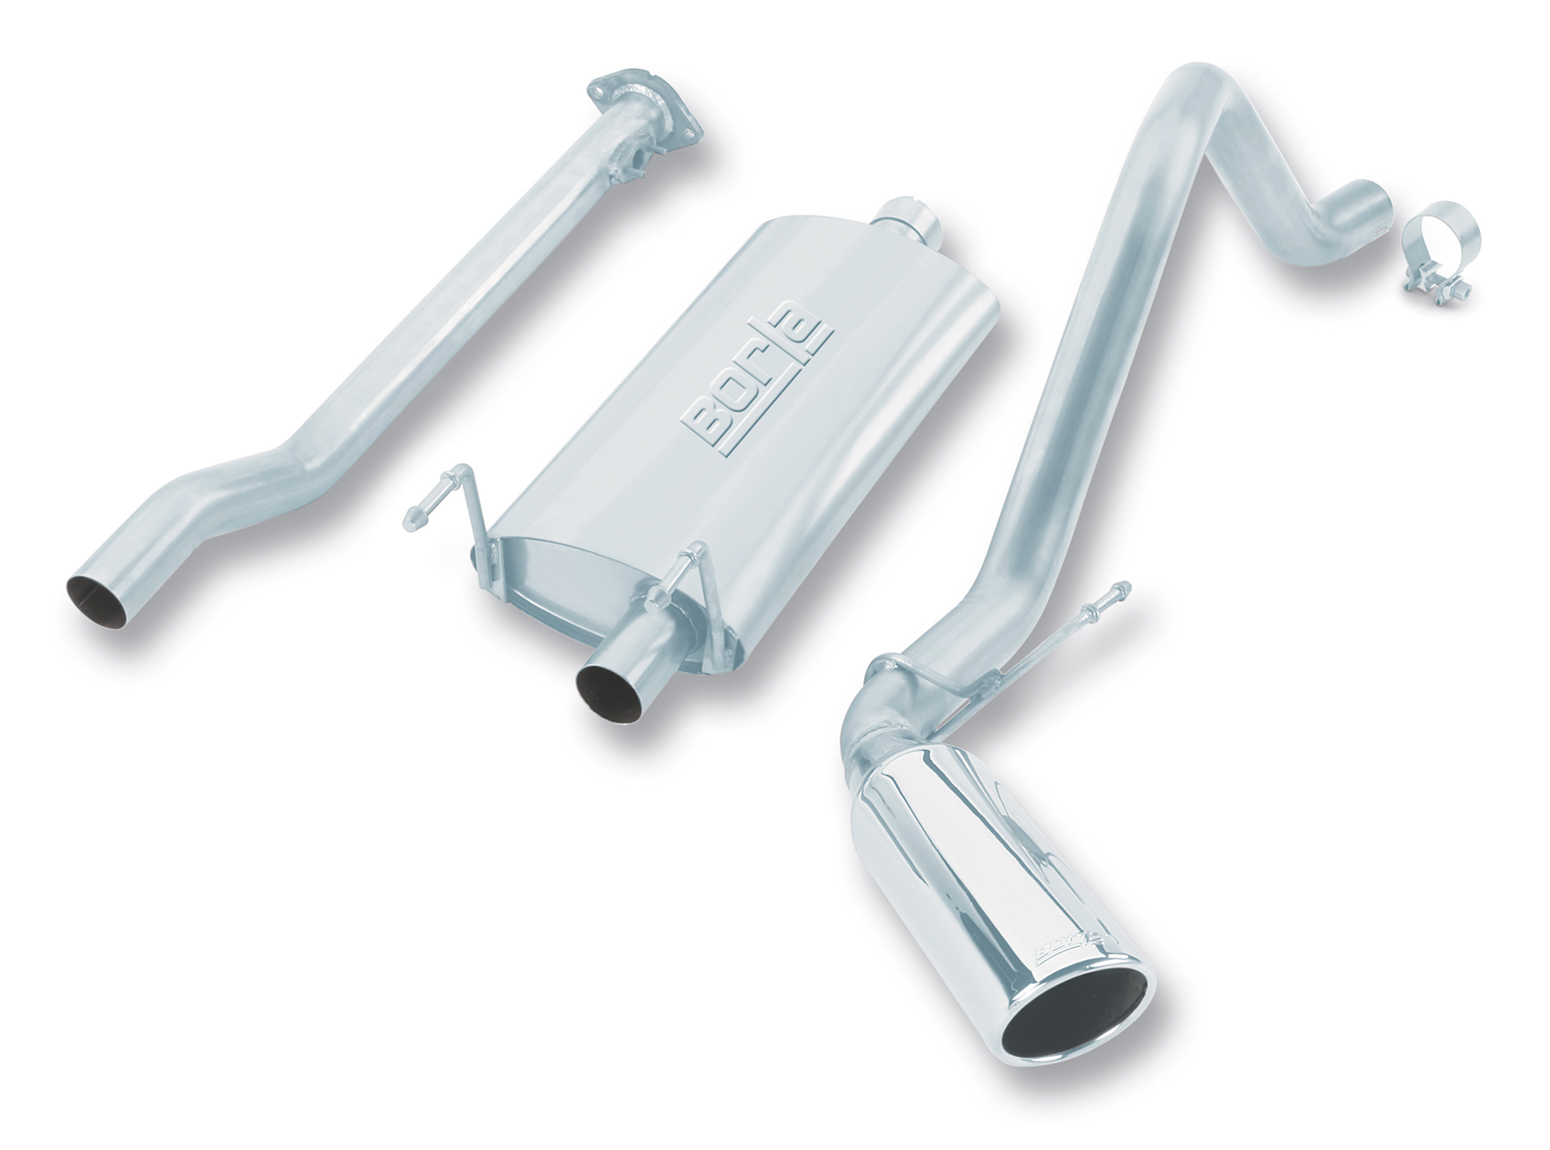 "Toyota Tacoma  2000-2003 Borla 2.25"" Cat-Back Exhaust System - Single Round Rolled Angle-Cut  Long X Single Round Rolled Angle-Cut Intercooled"" Dia"